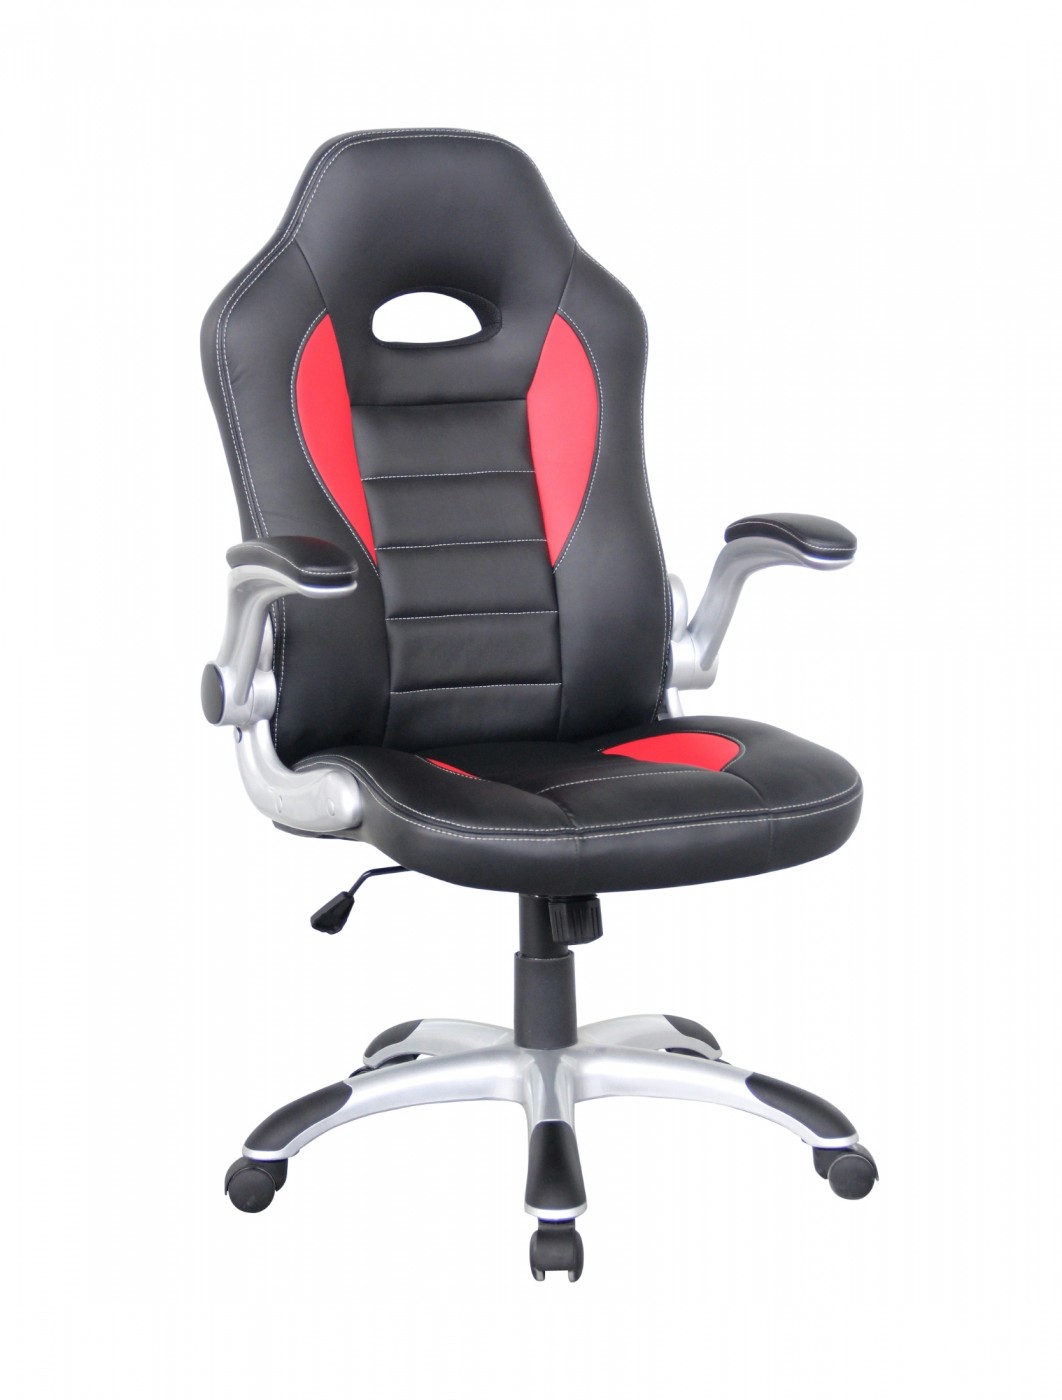 pit stop gaming chair garden swing chair with stand round kitchen rh chair sinclair pw